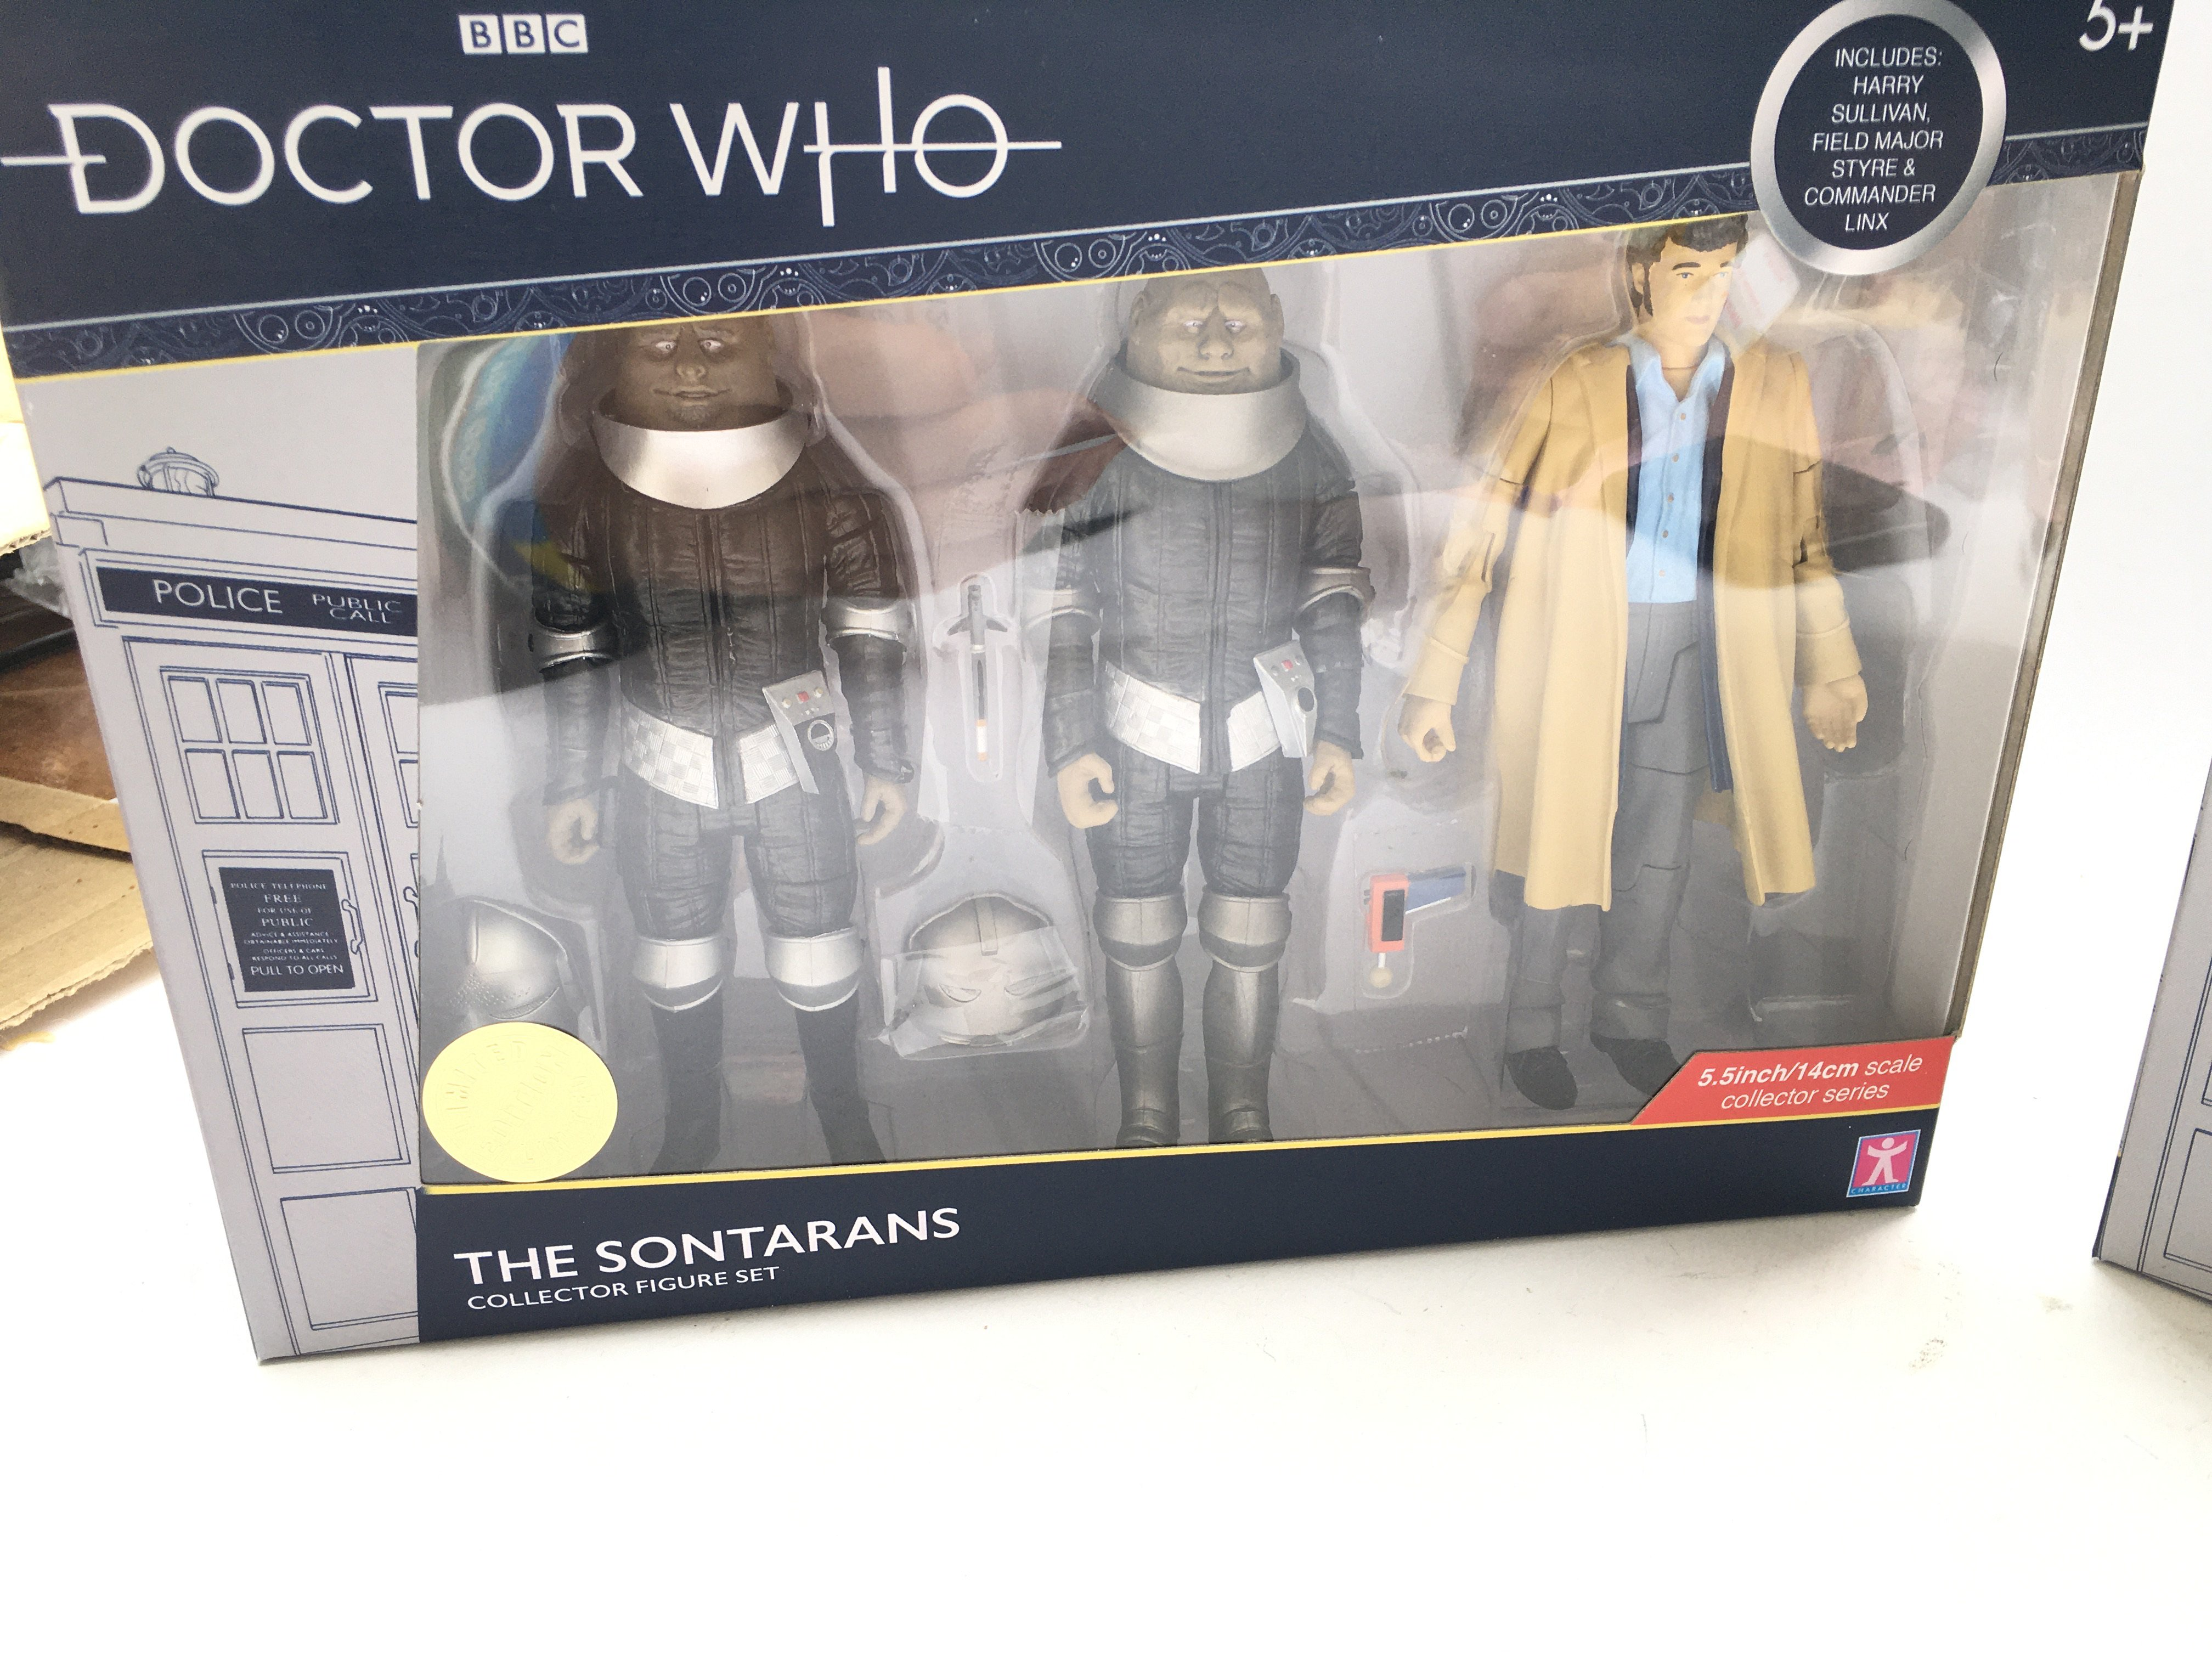 3 X Doctor Who Collector Figure Sets including The - Image 2 of 4